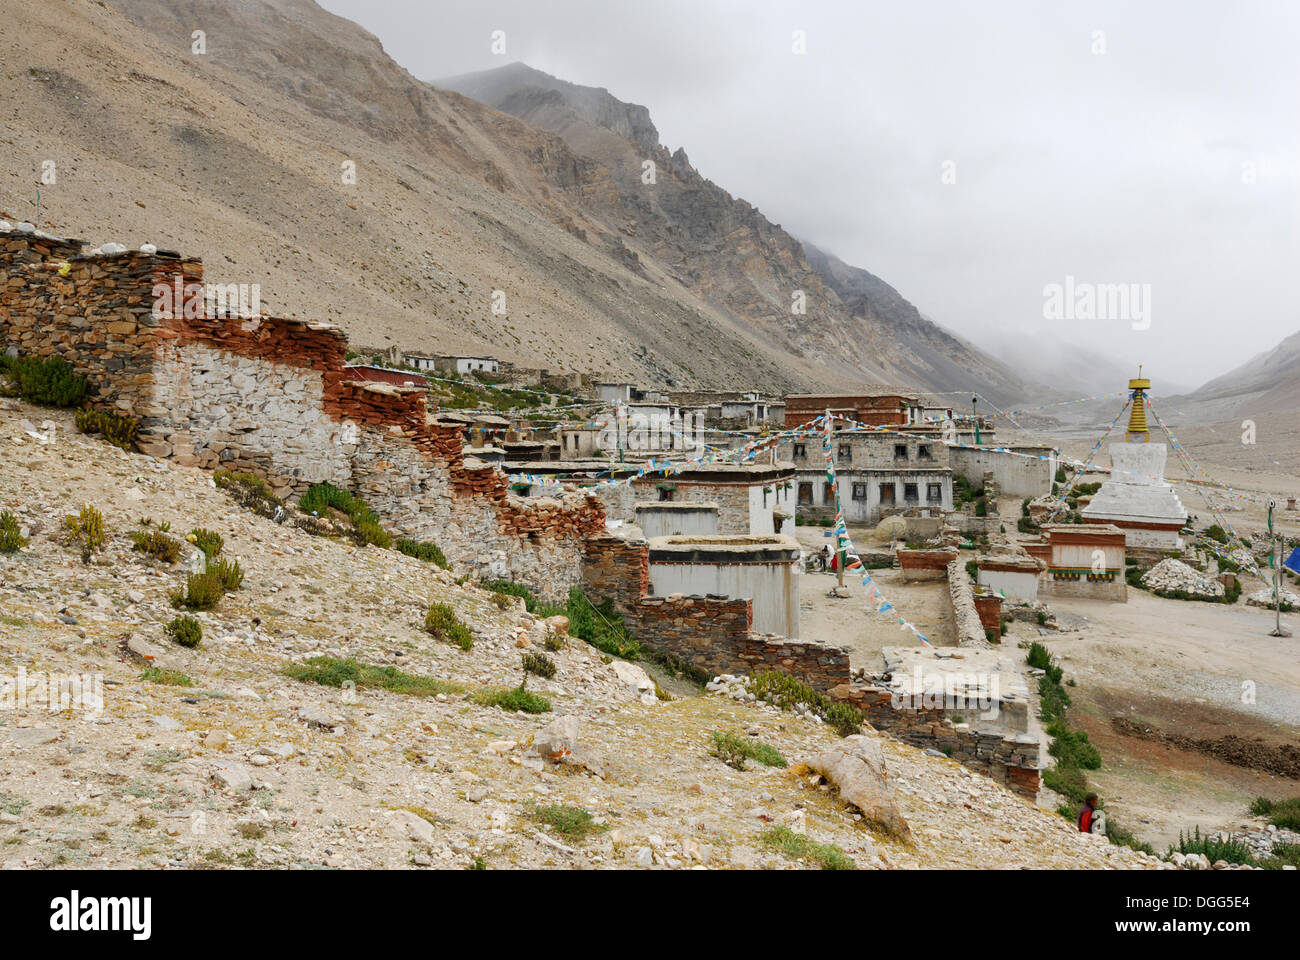 Rongbuk monastery and white stupa in front of the cloudy Mt. Everest, Tibet, China, Asia - Stock Image